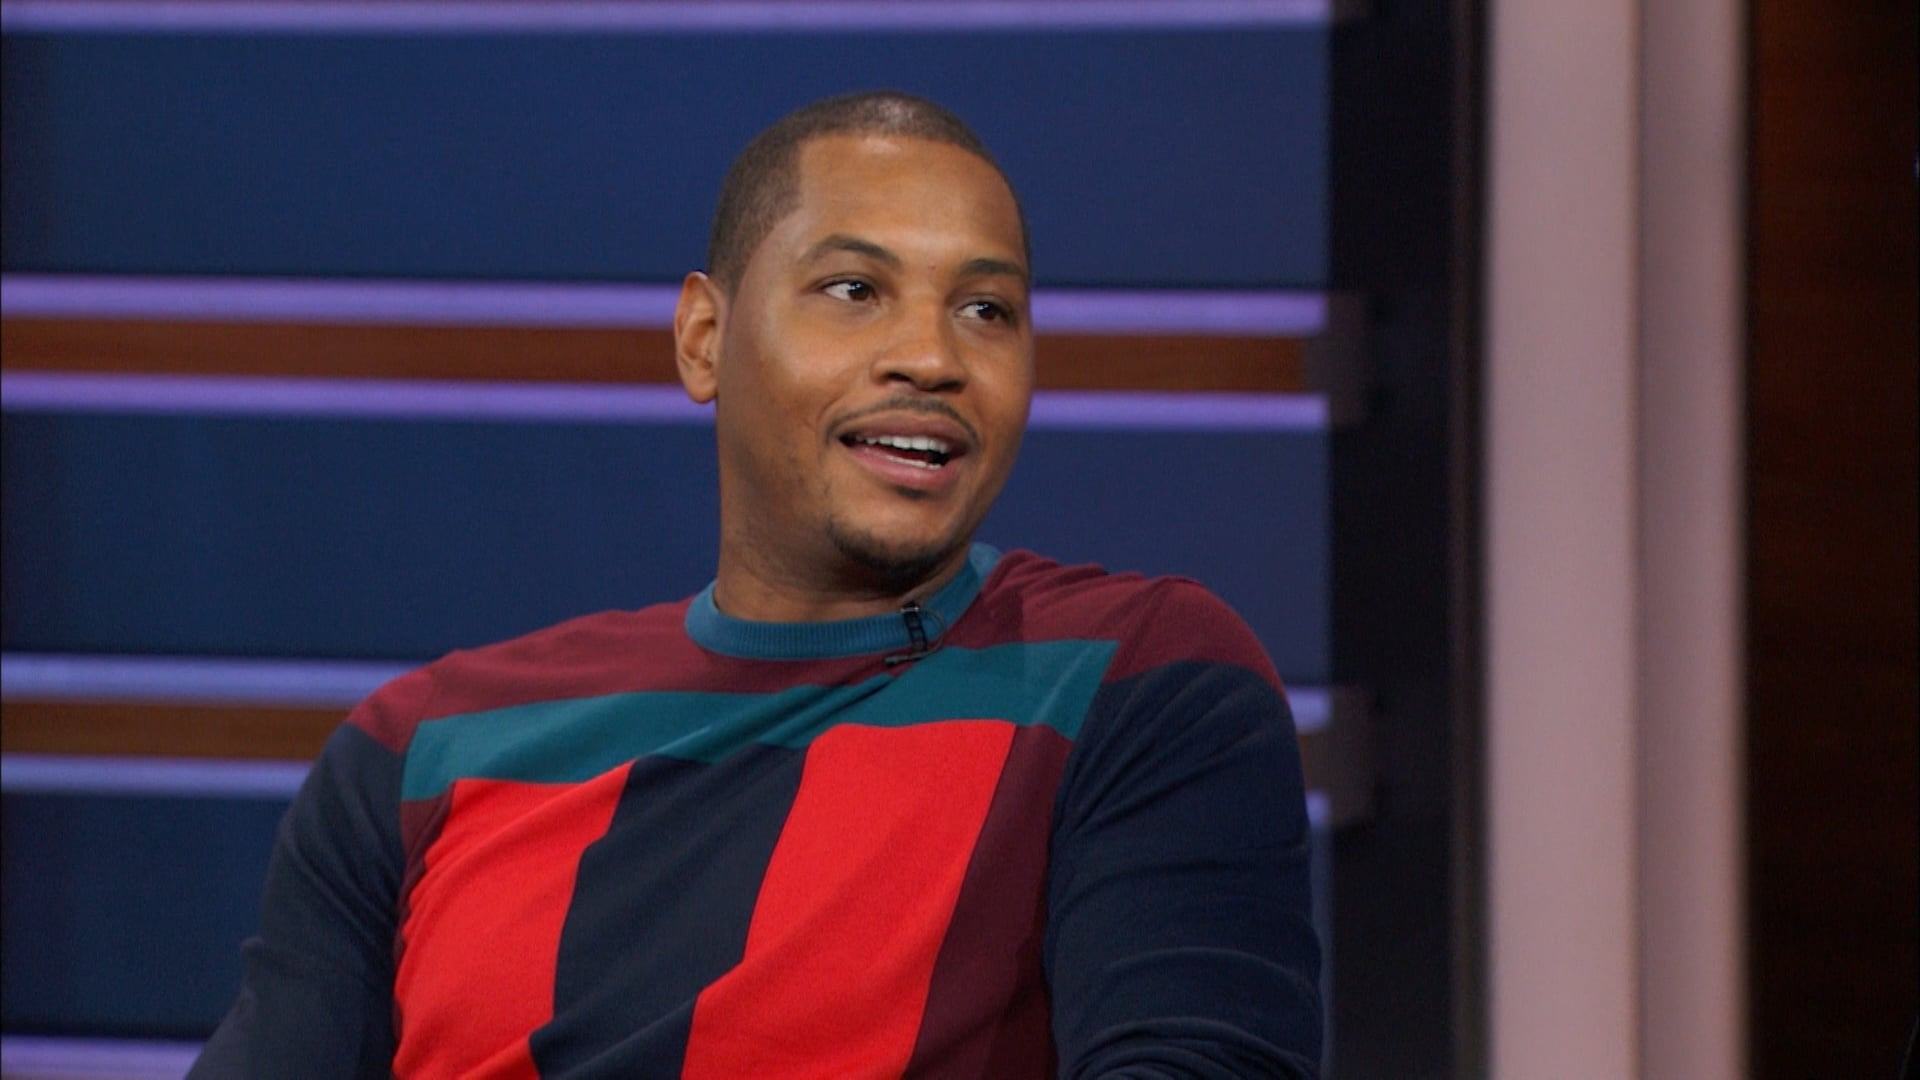 The Daily Show with Trevor Noah - Season 22 Episode 4 : Carmelo Anthony